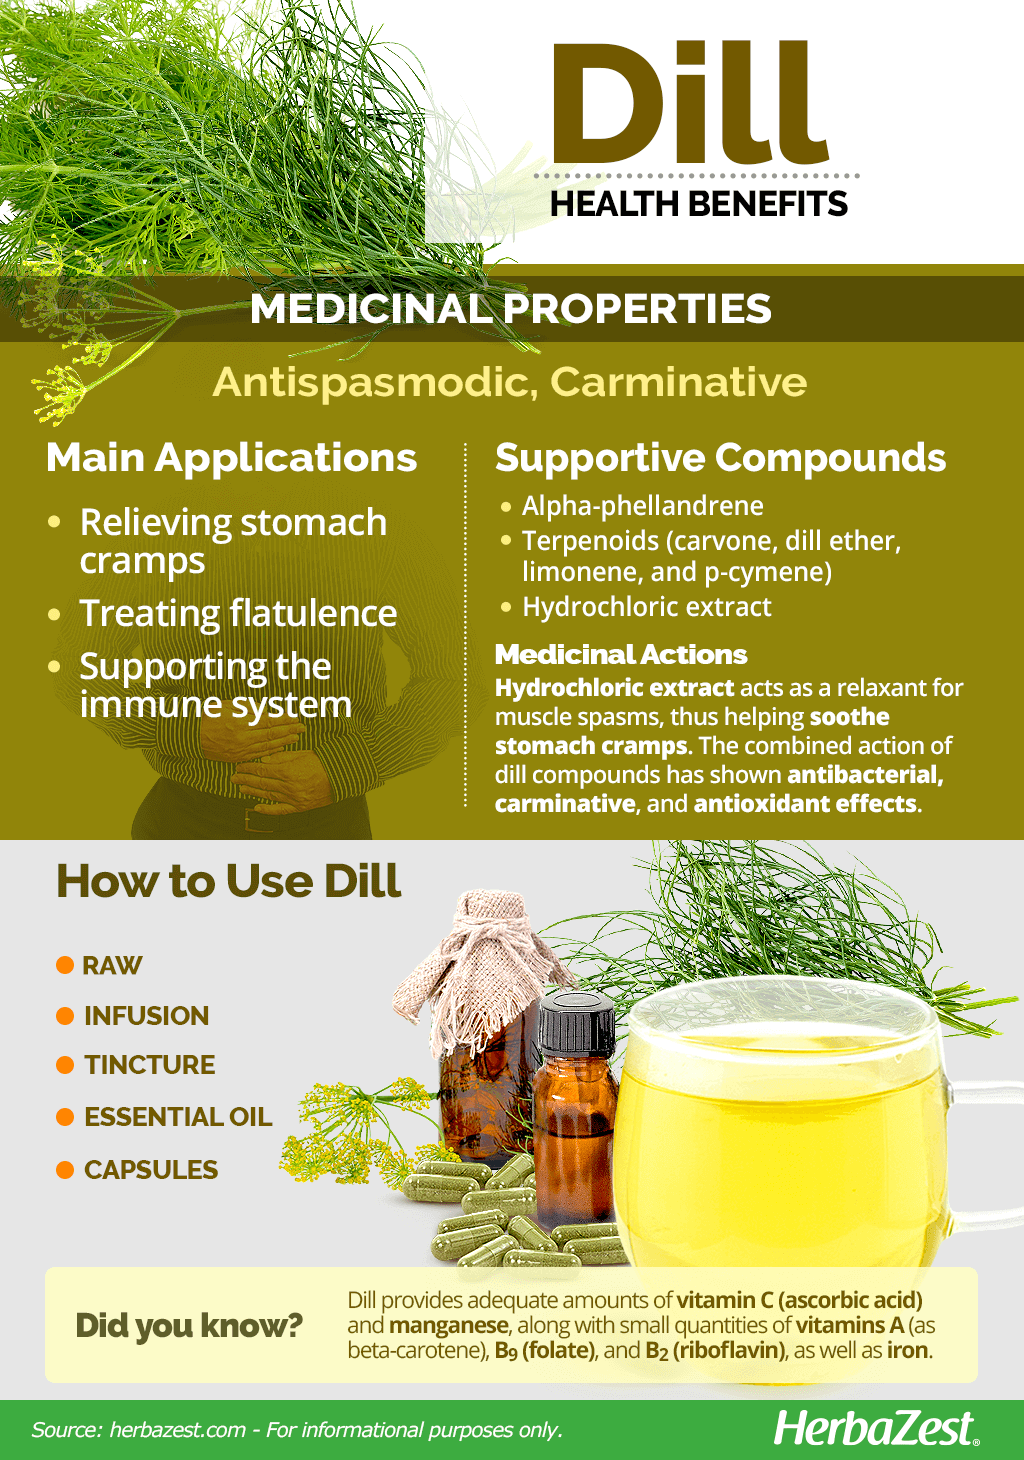 All About Dill